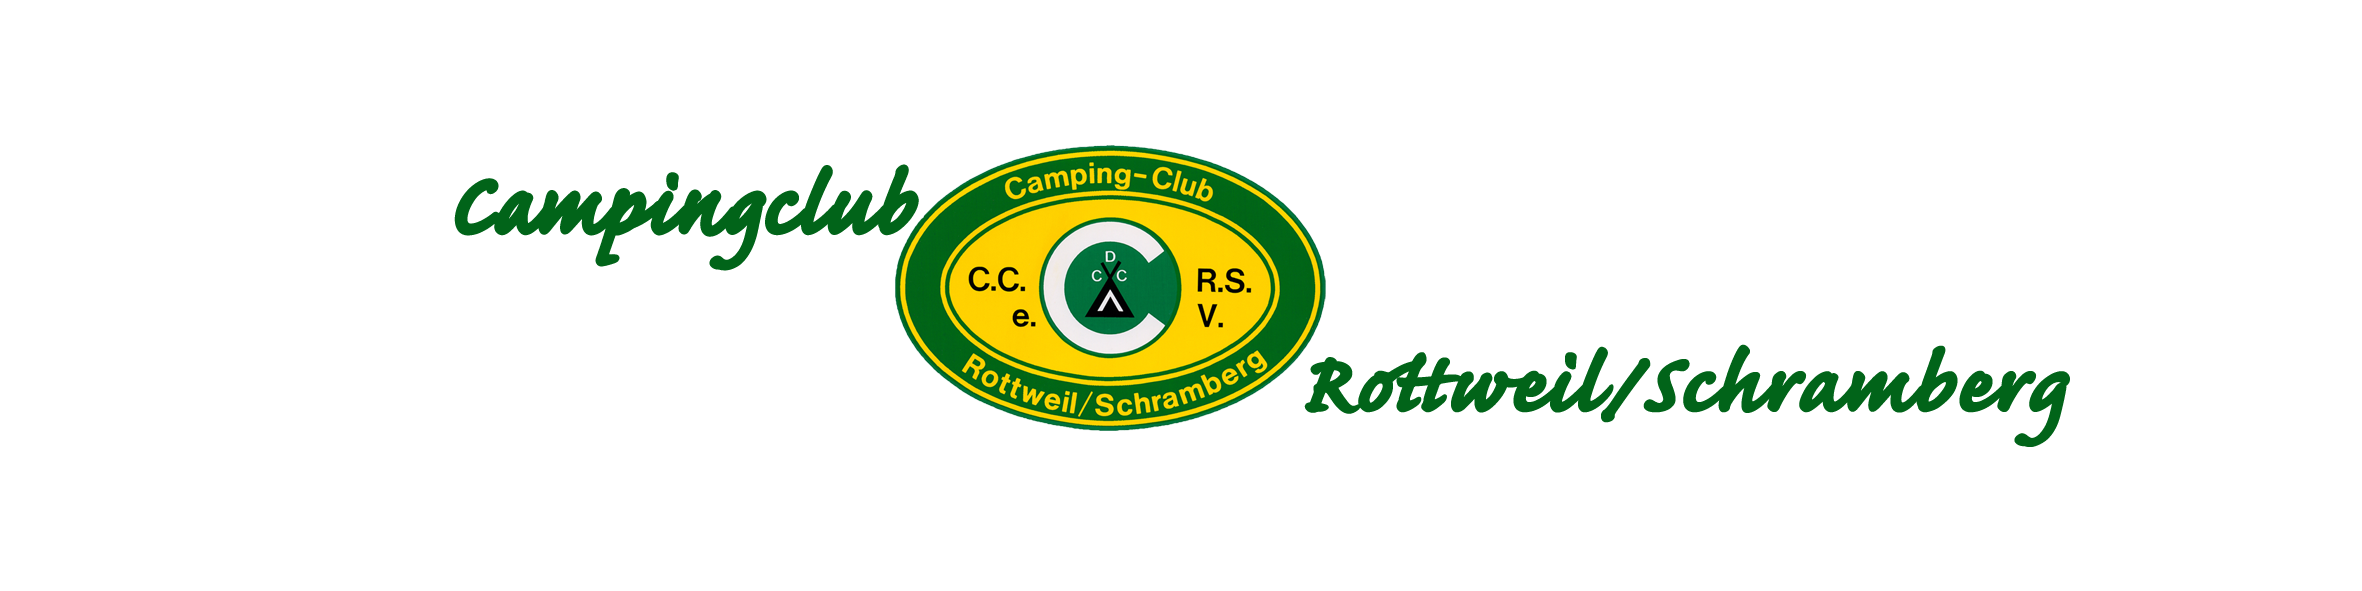 Camping-Club Rottweil/Schramberg